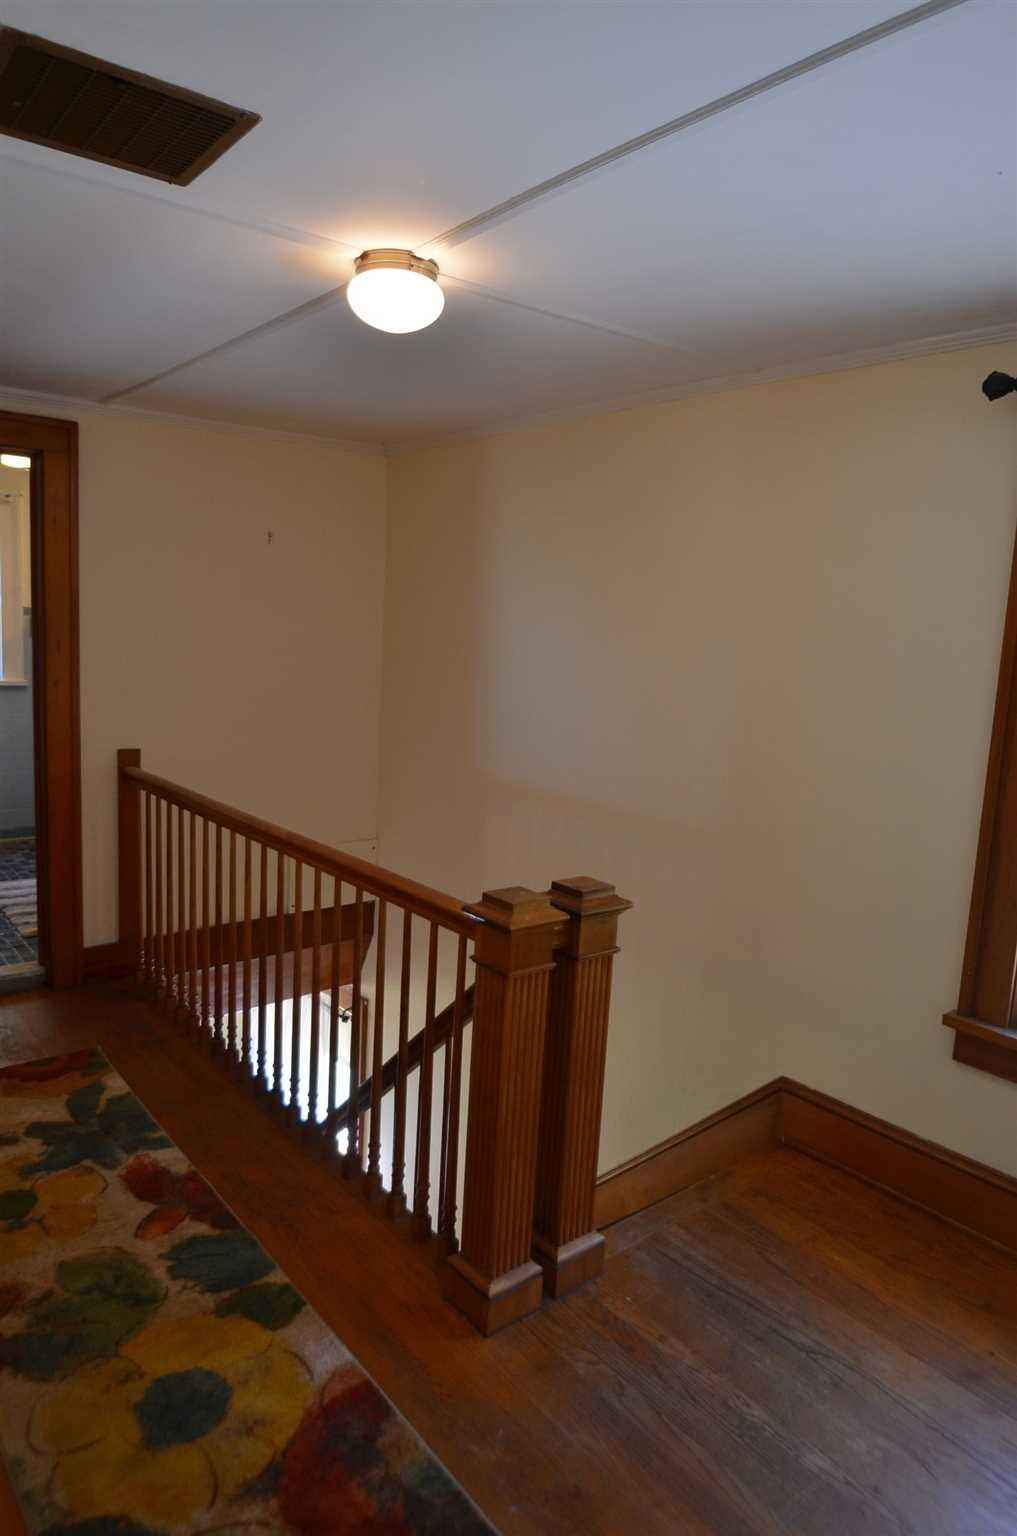 Additional photo for property listing at 17 OLD ROUTE 9 17 OLD ROUTE 9 Hyde Park, New York 12580 United States